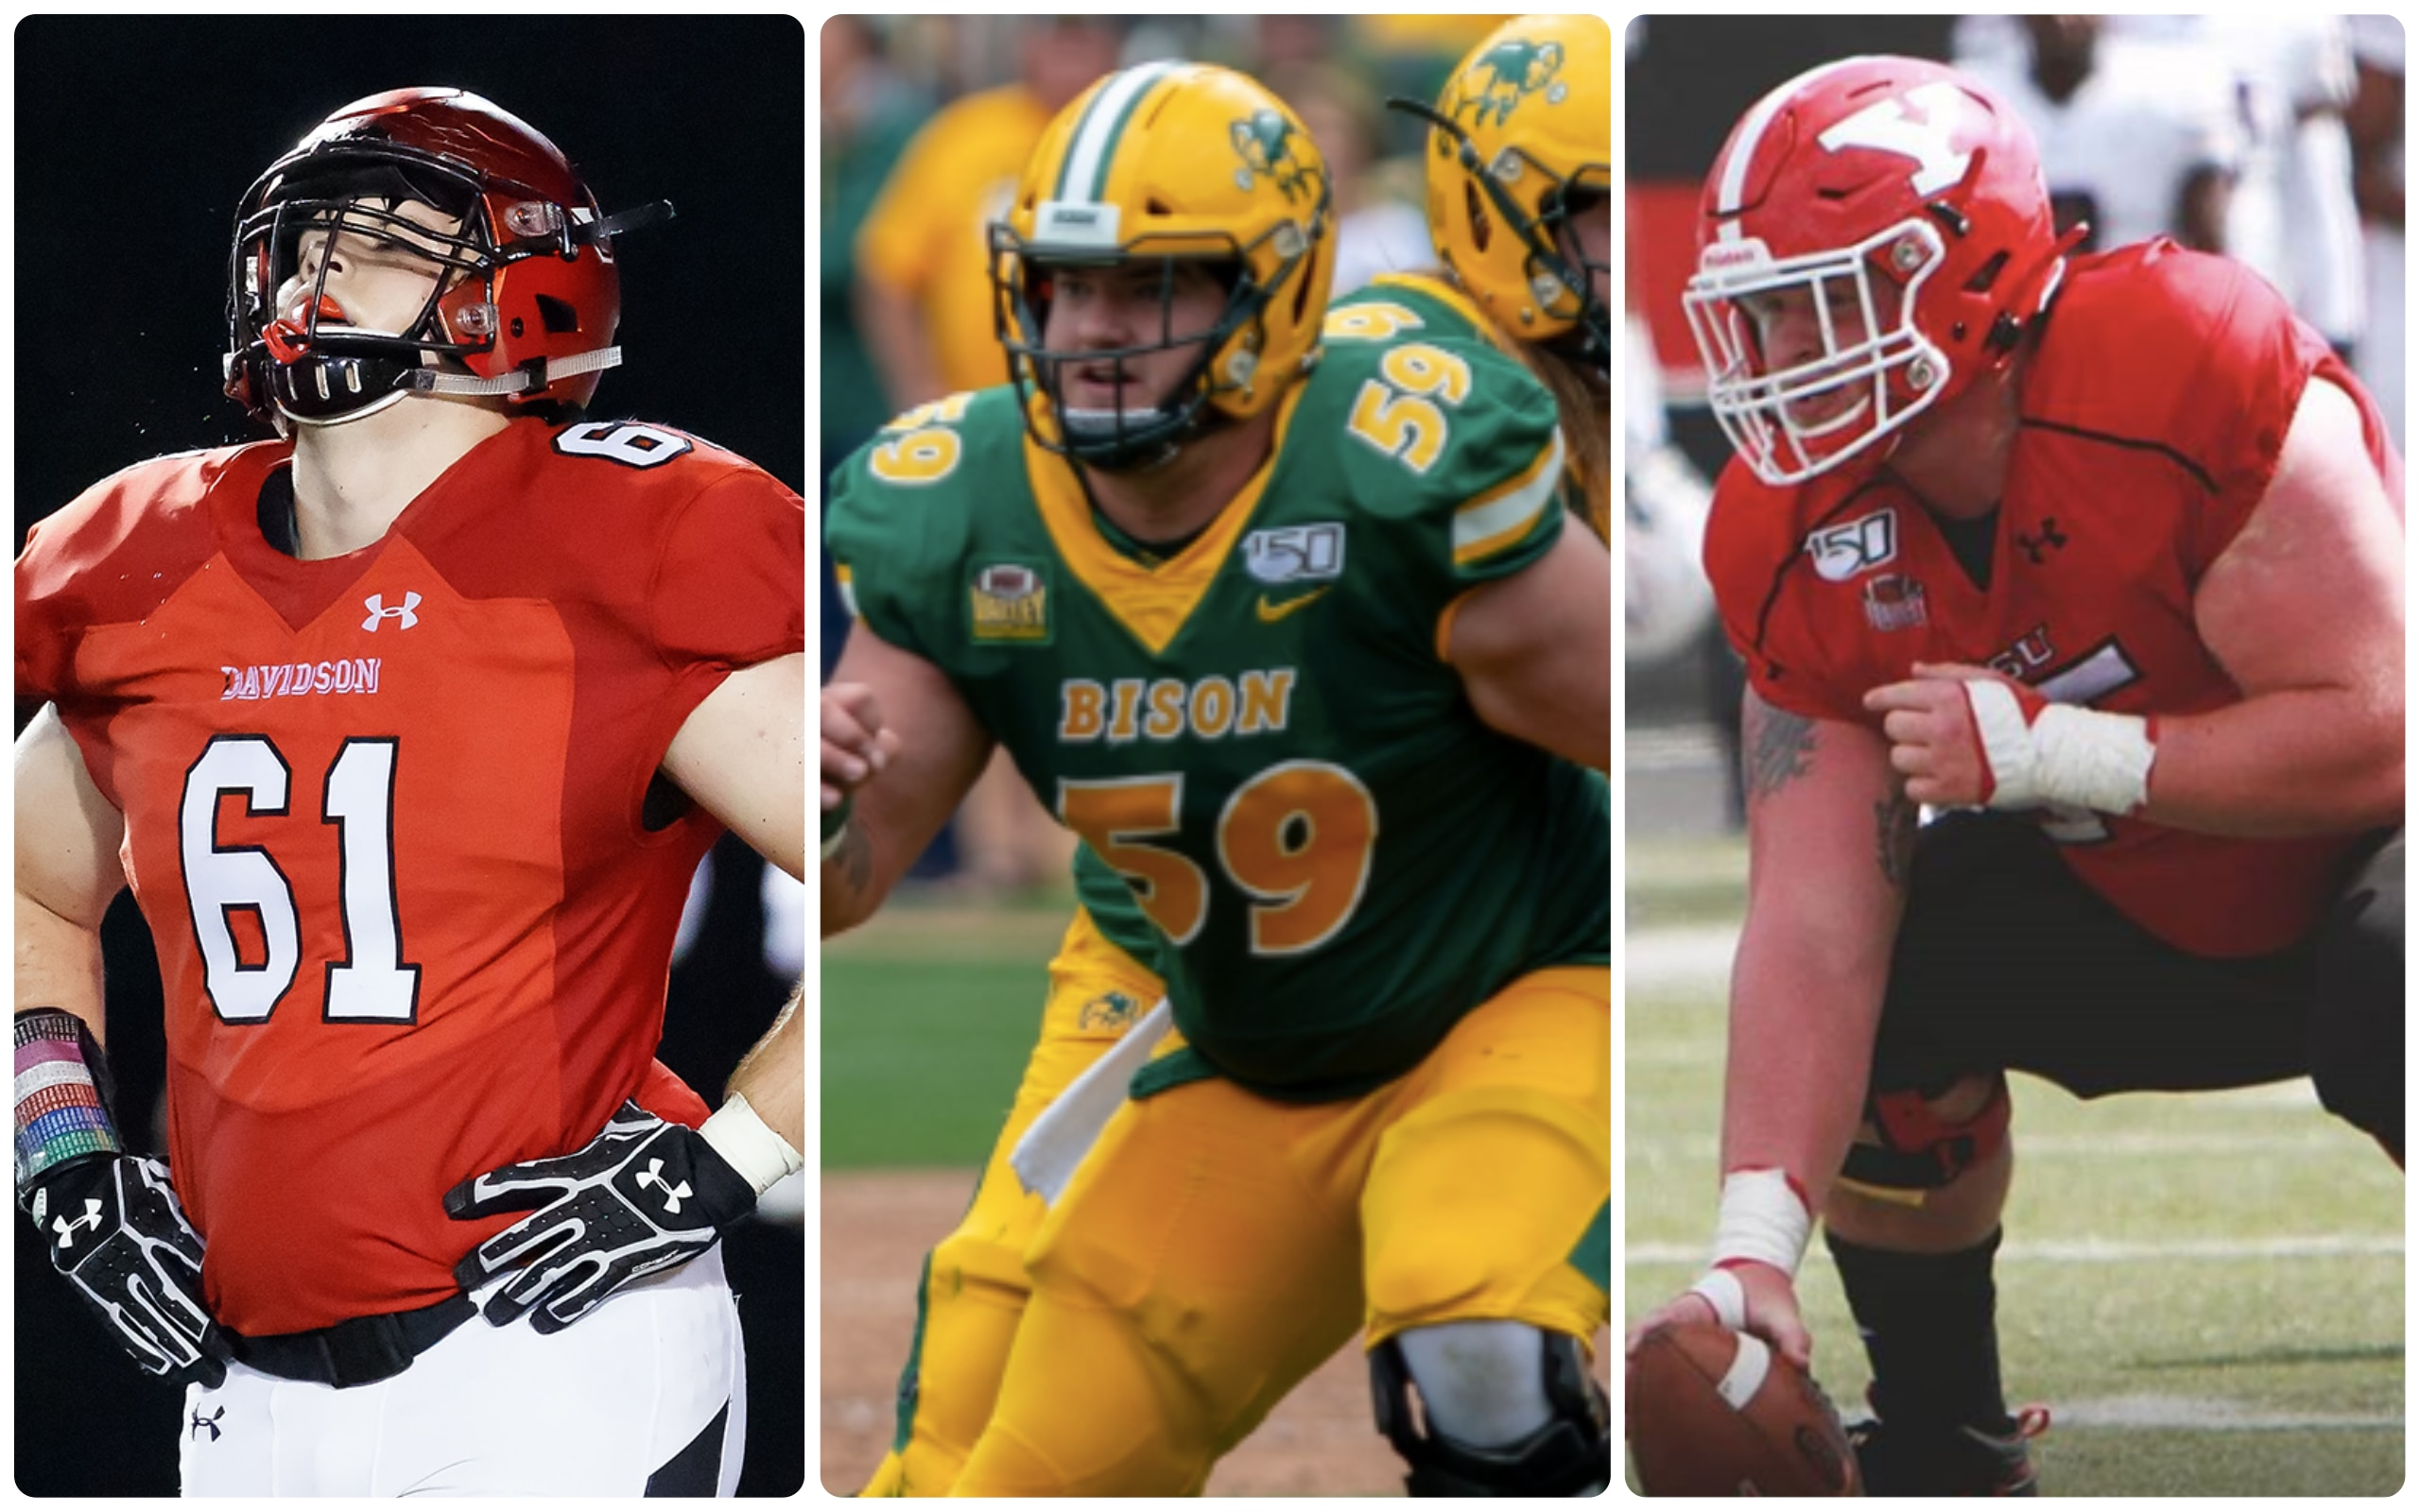 Best Offensive Lines 2020.The Best Offensive Lines In Fcs Football This Season By The